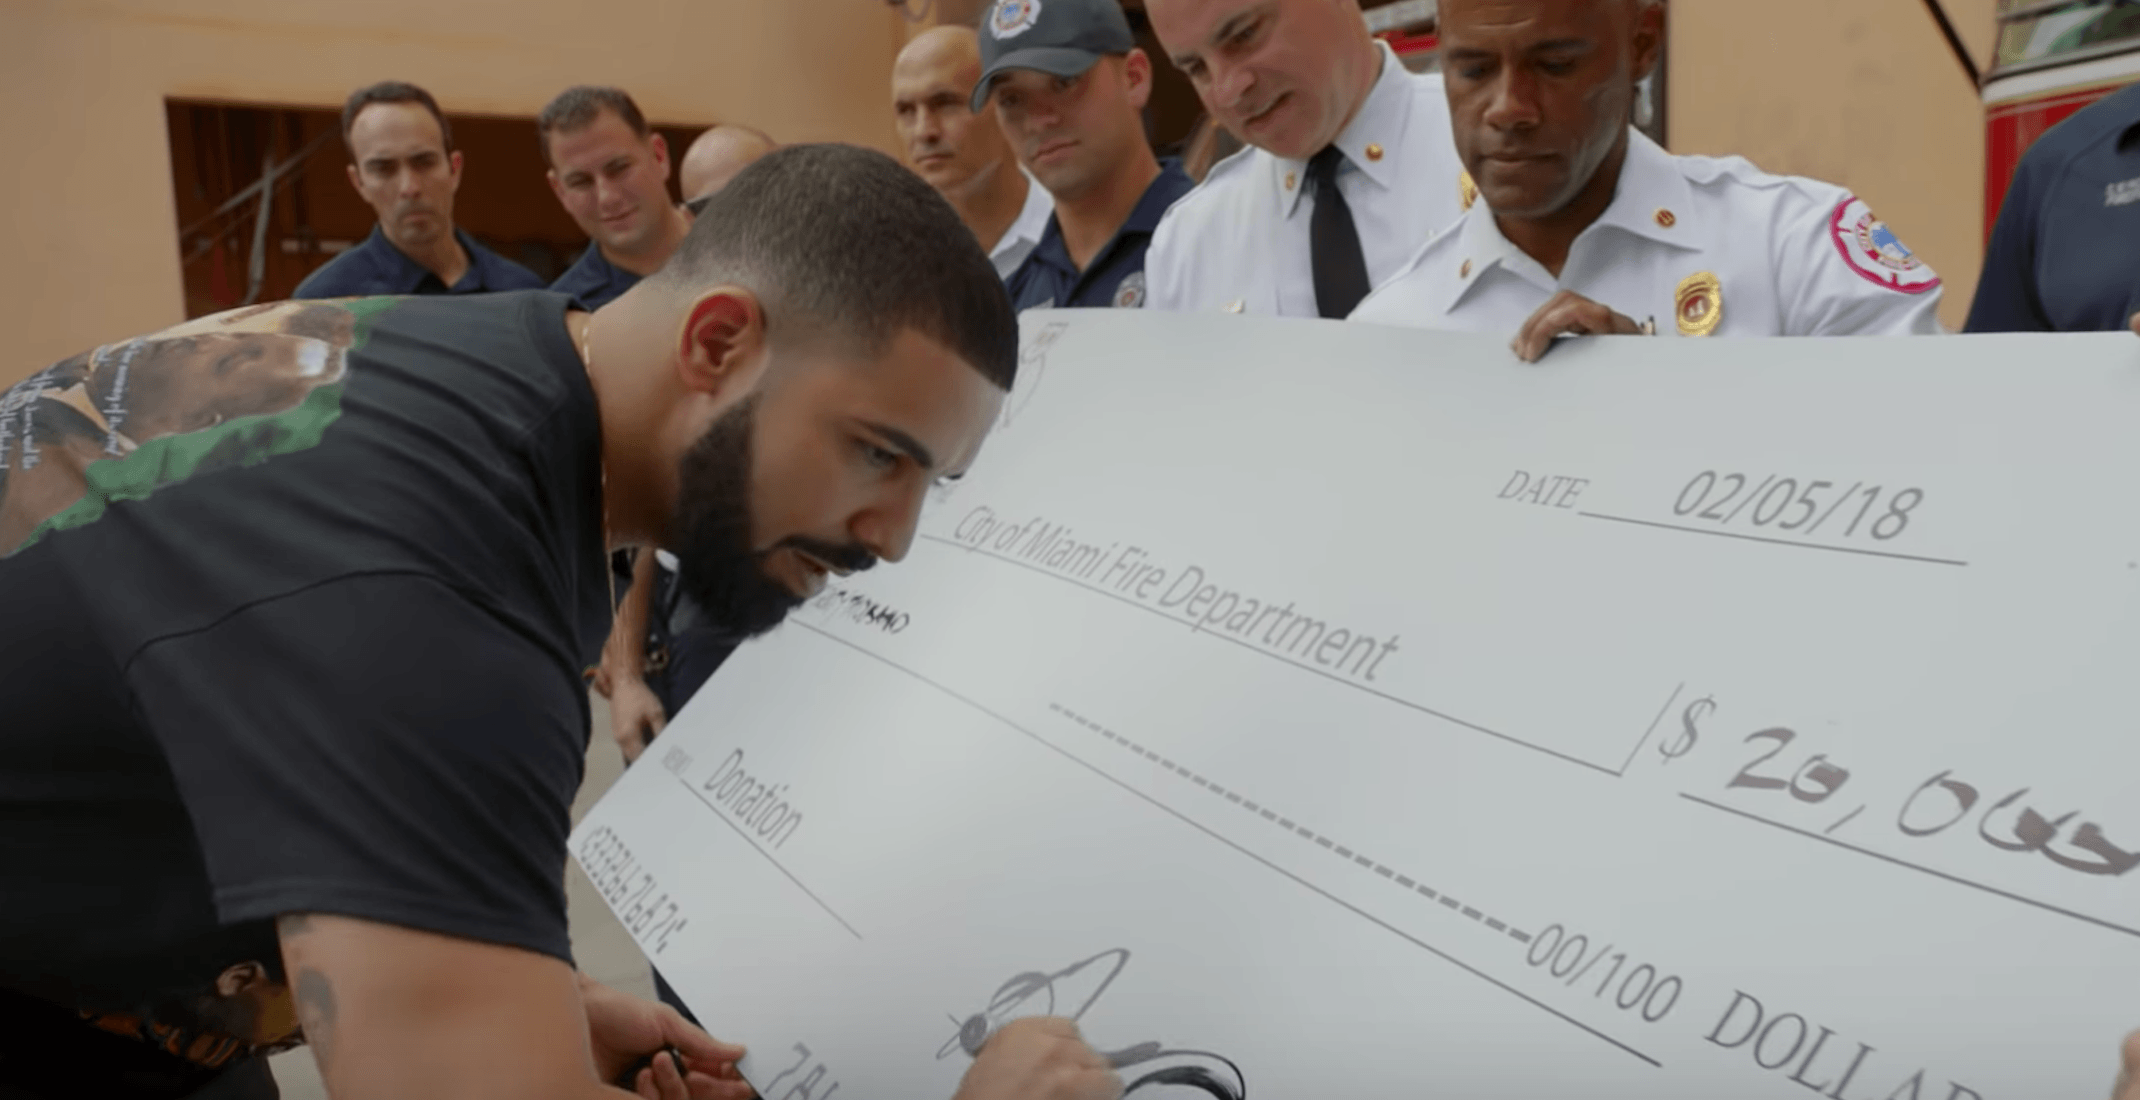 Drake gives away nearly $1 million to strangers in latest music video